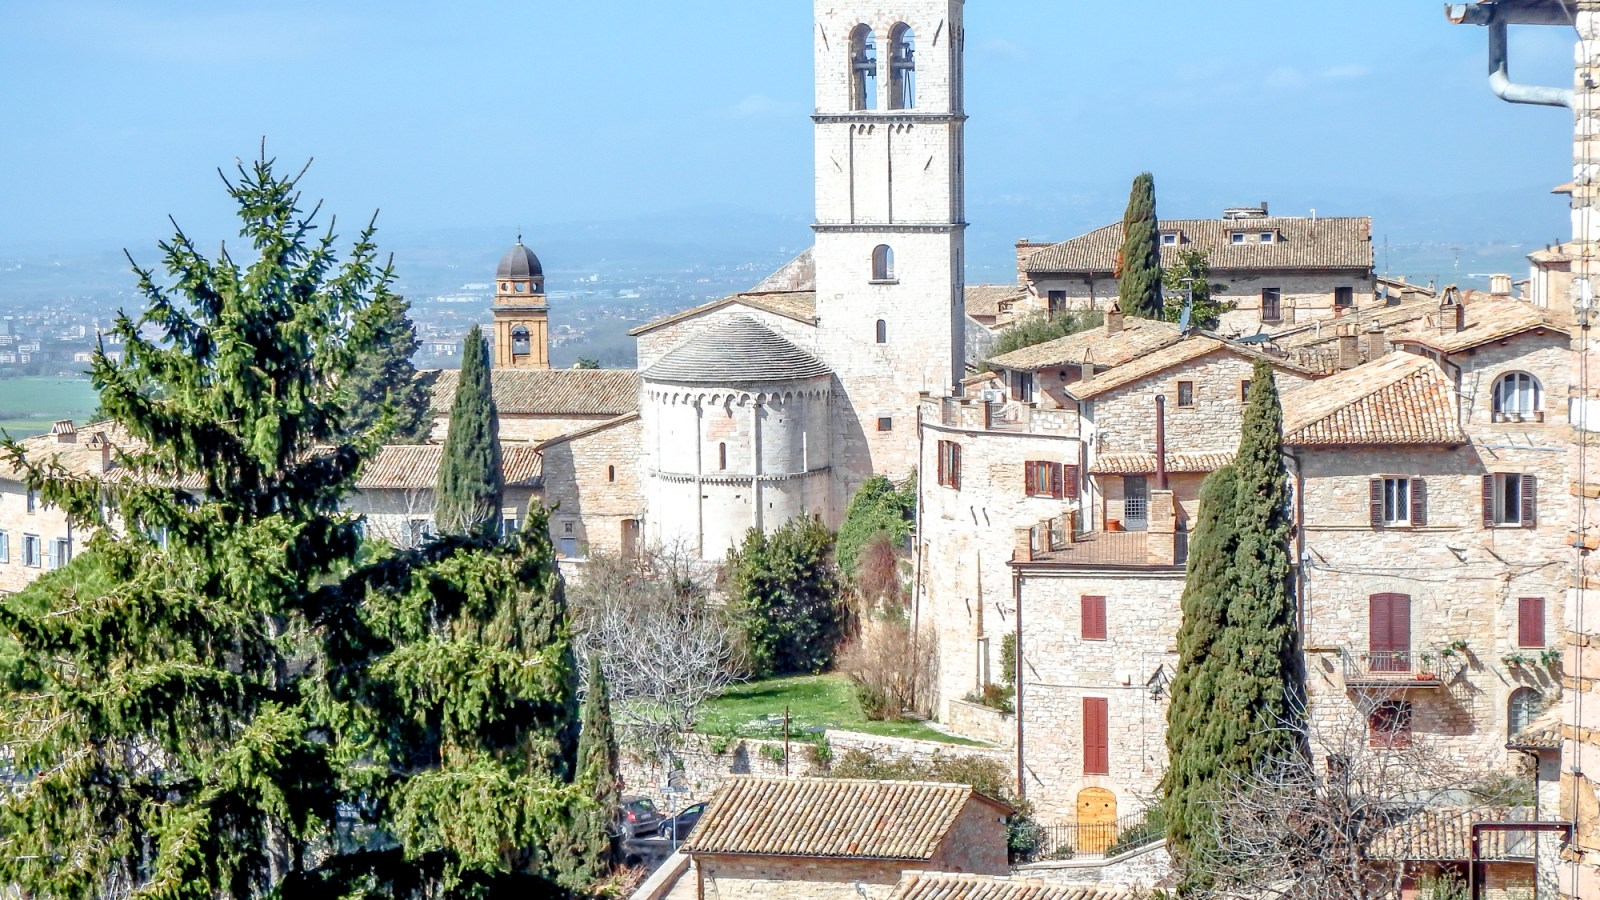 Day trip to Assisi, Italy in the beautiful Umbria region | Italian day trips, #traveltips #traveladvice #italy #stfrancis #assisi #umbria #daytrips